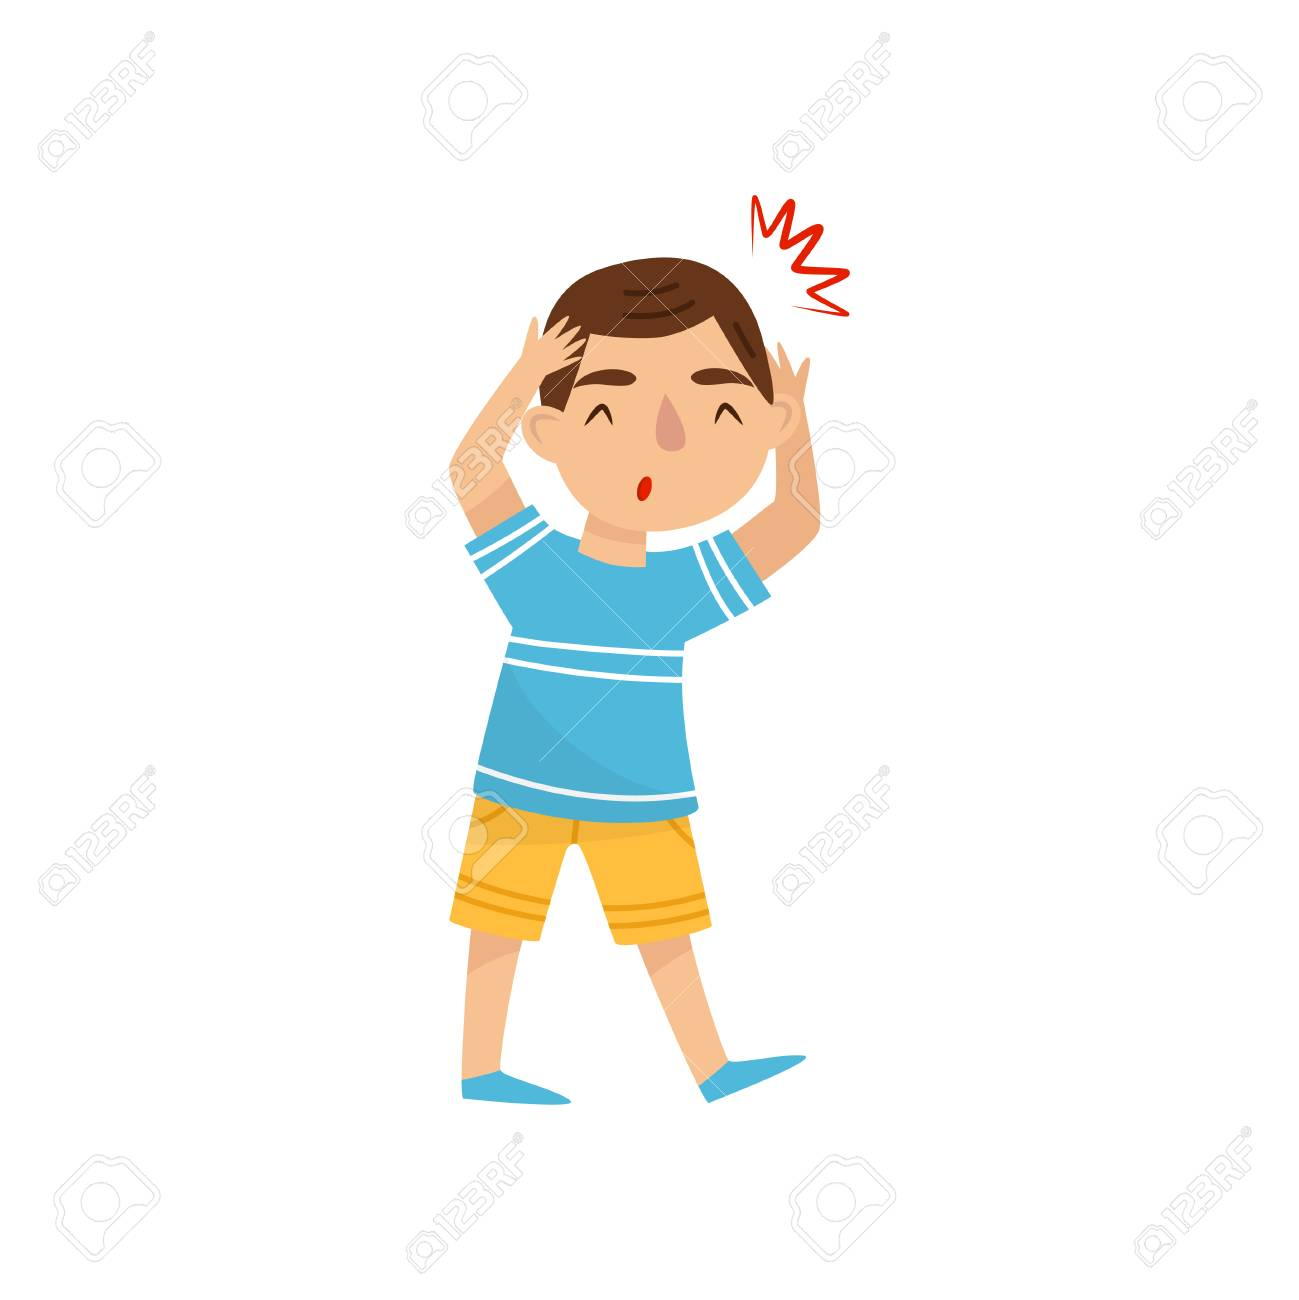 Little Boy Suffering From Headache Child With Pain In The Head Royalty Free Cliparts Vectors And Stock Illustration Image 110386864